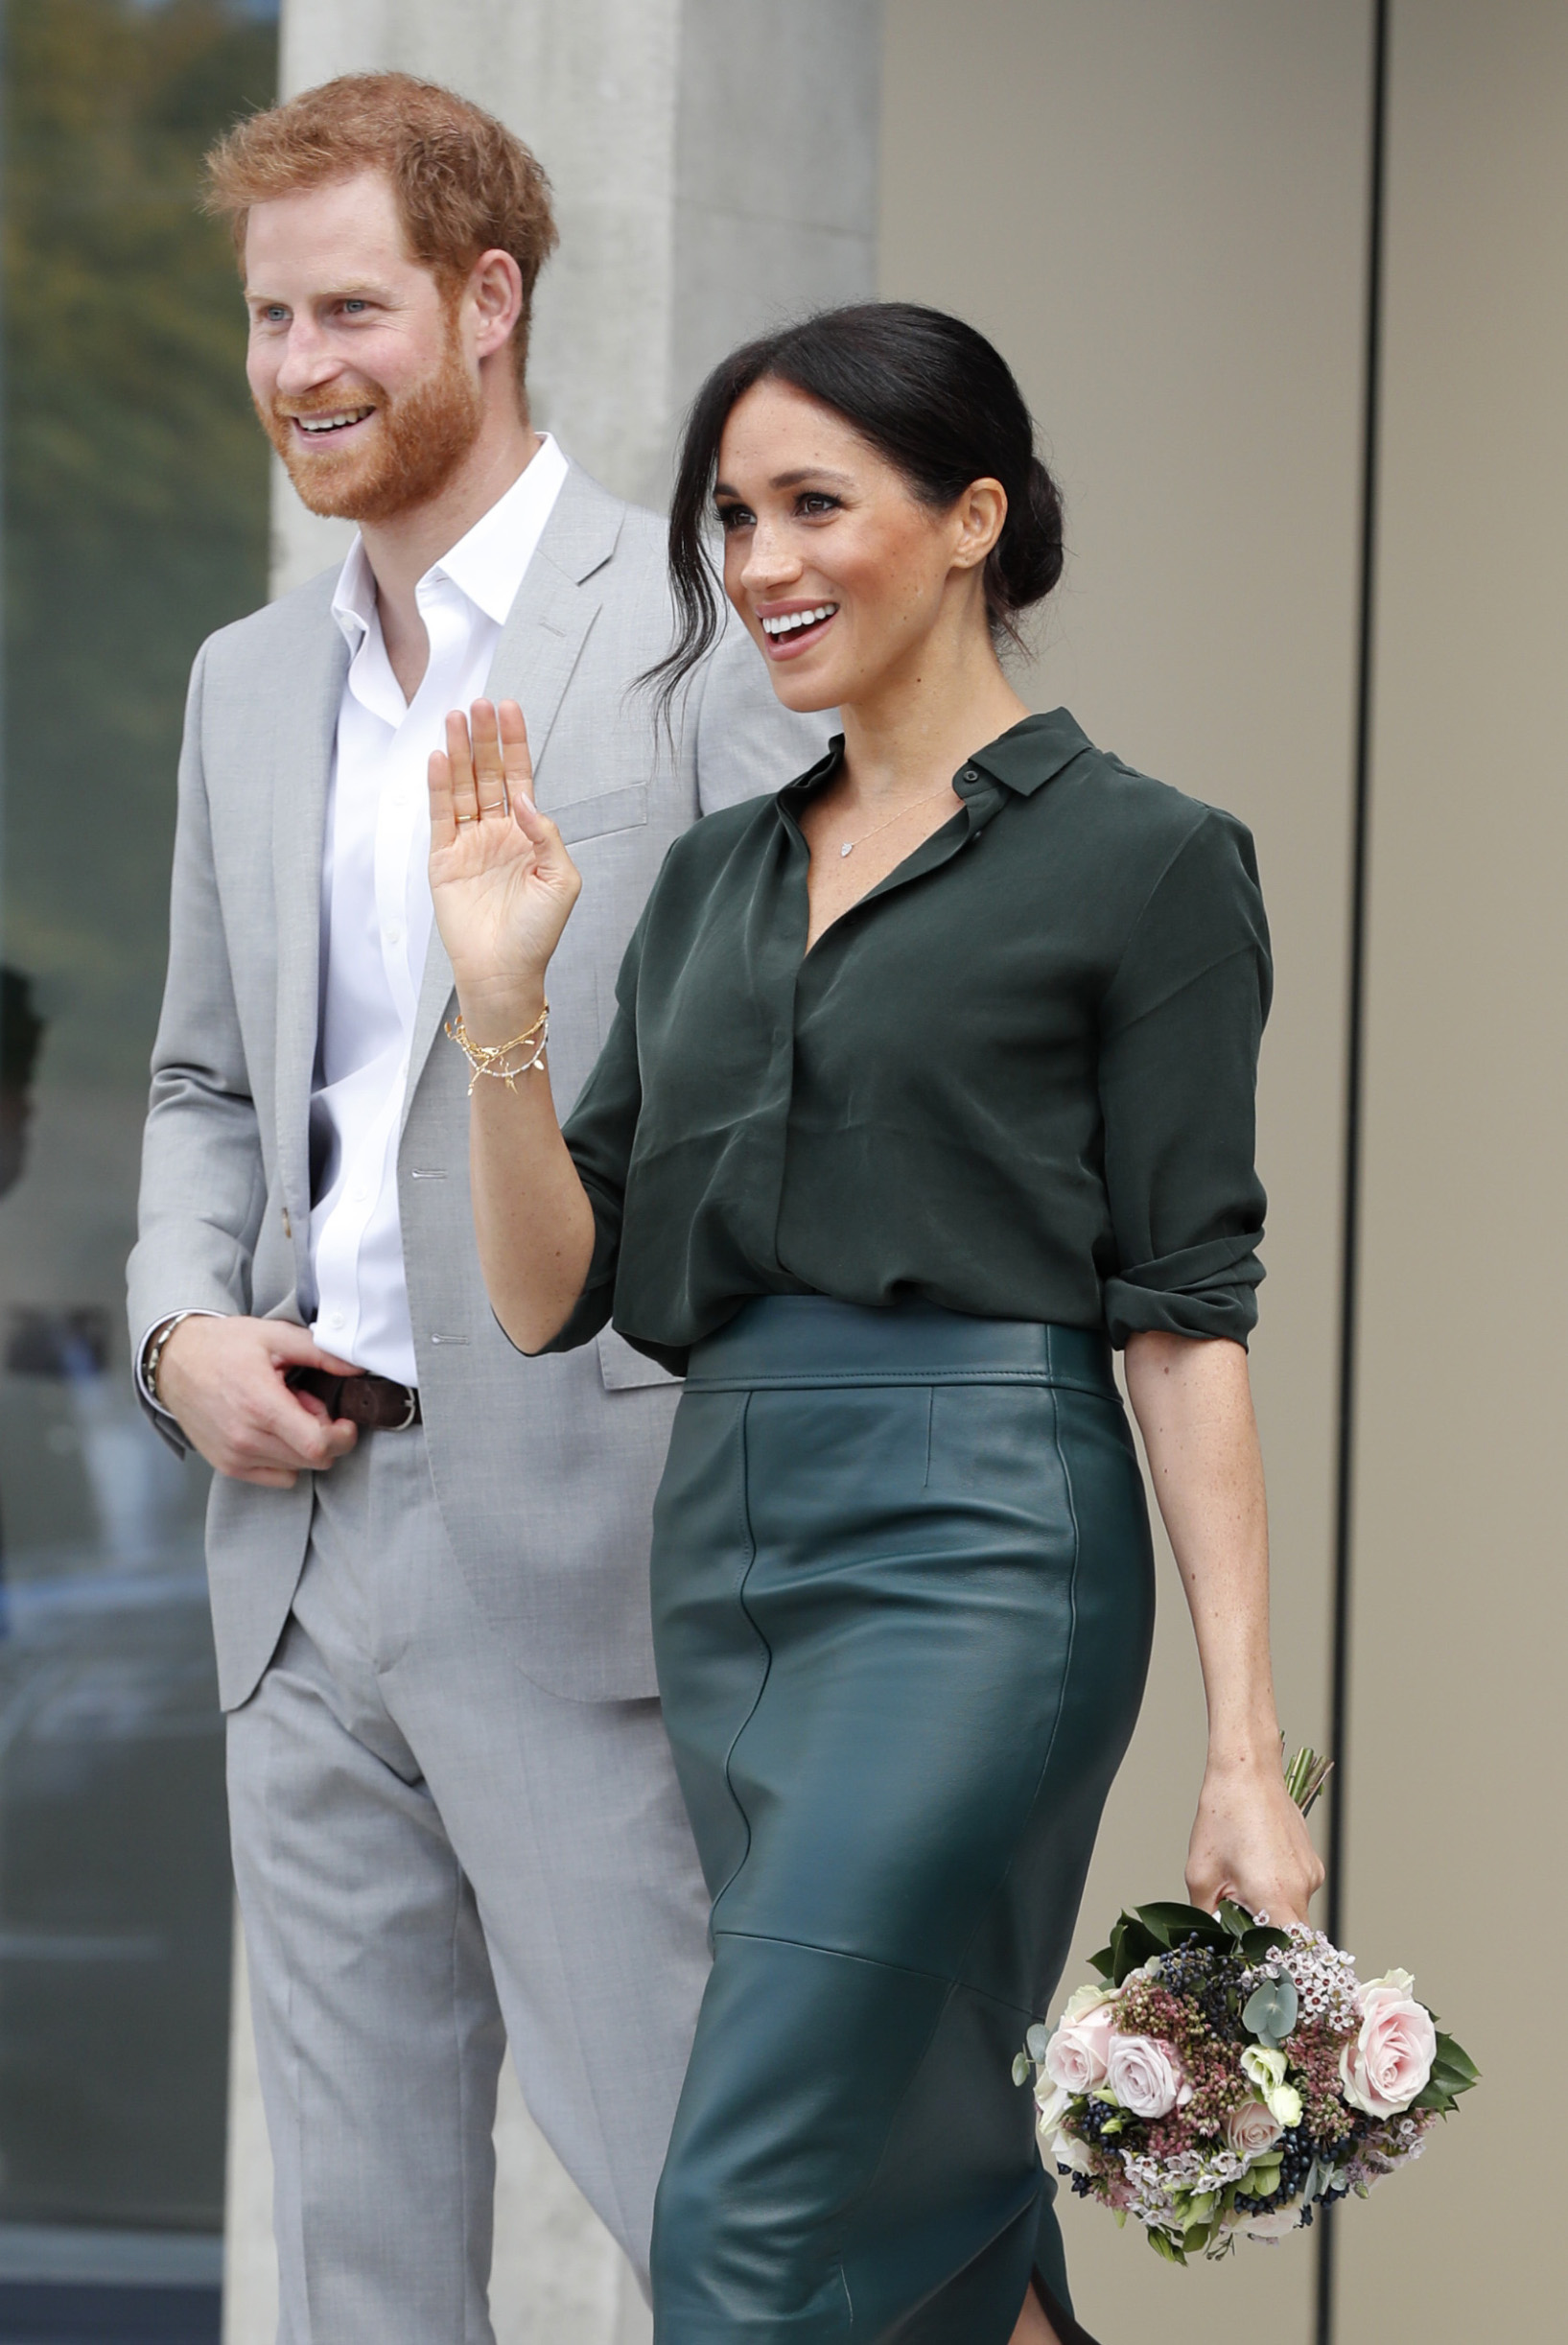 CHICHESTER, ENGLAND - OCTOBER 3: Meghan, Duchess of Sussex and Prince Harry, Duke of Sussex at The University of Chichester Tech Park during an official visit to Sussex on October 3, 2018 in Chichester, England. The Duke and Duchess married on May 19th 2018 in Windsor and were conferred The Duke & Duchess of Sussex by The Queen.  (Photo by Heathcliff O'Malley - WPA Pool/Getty Images)